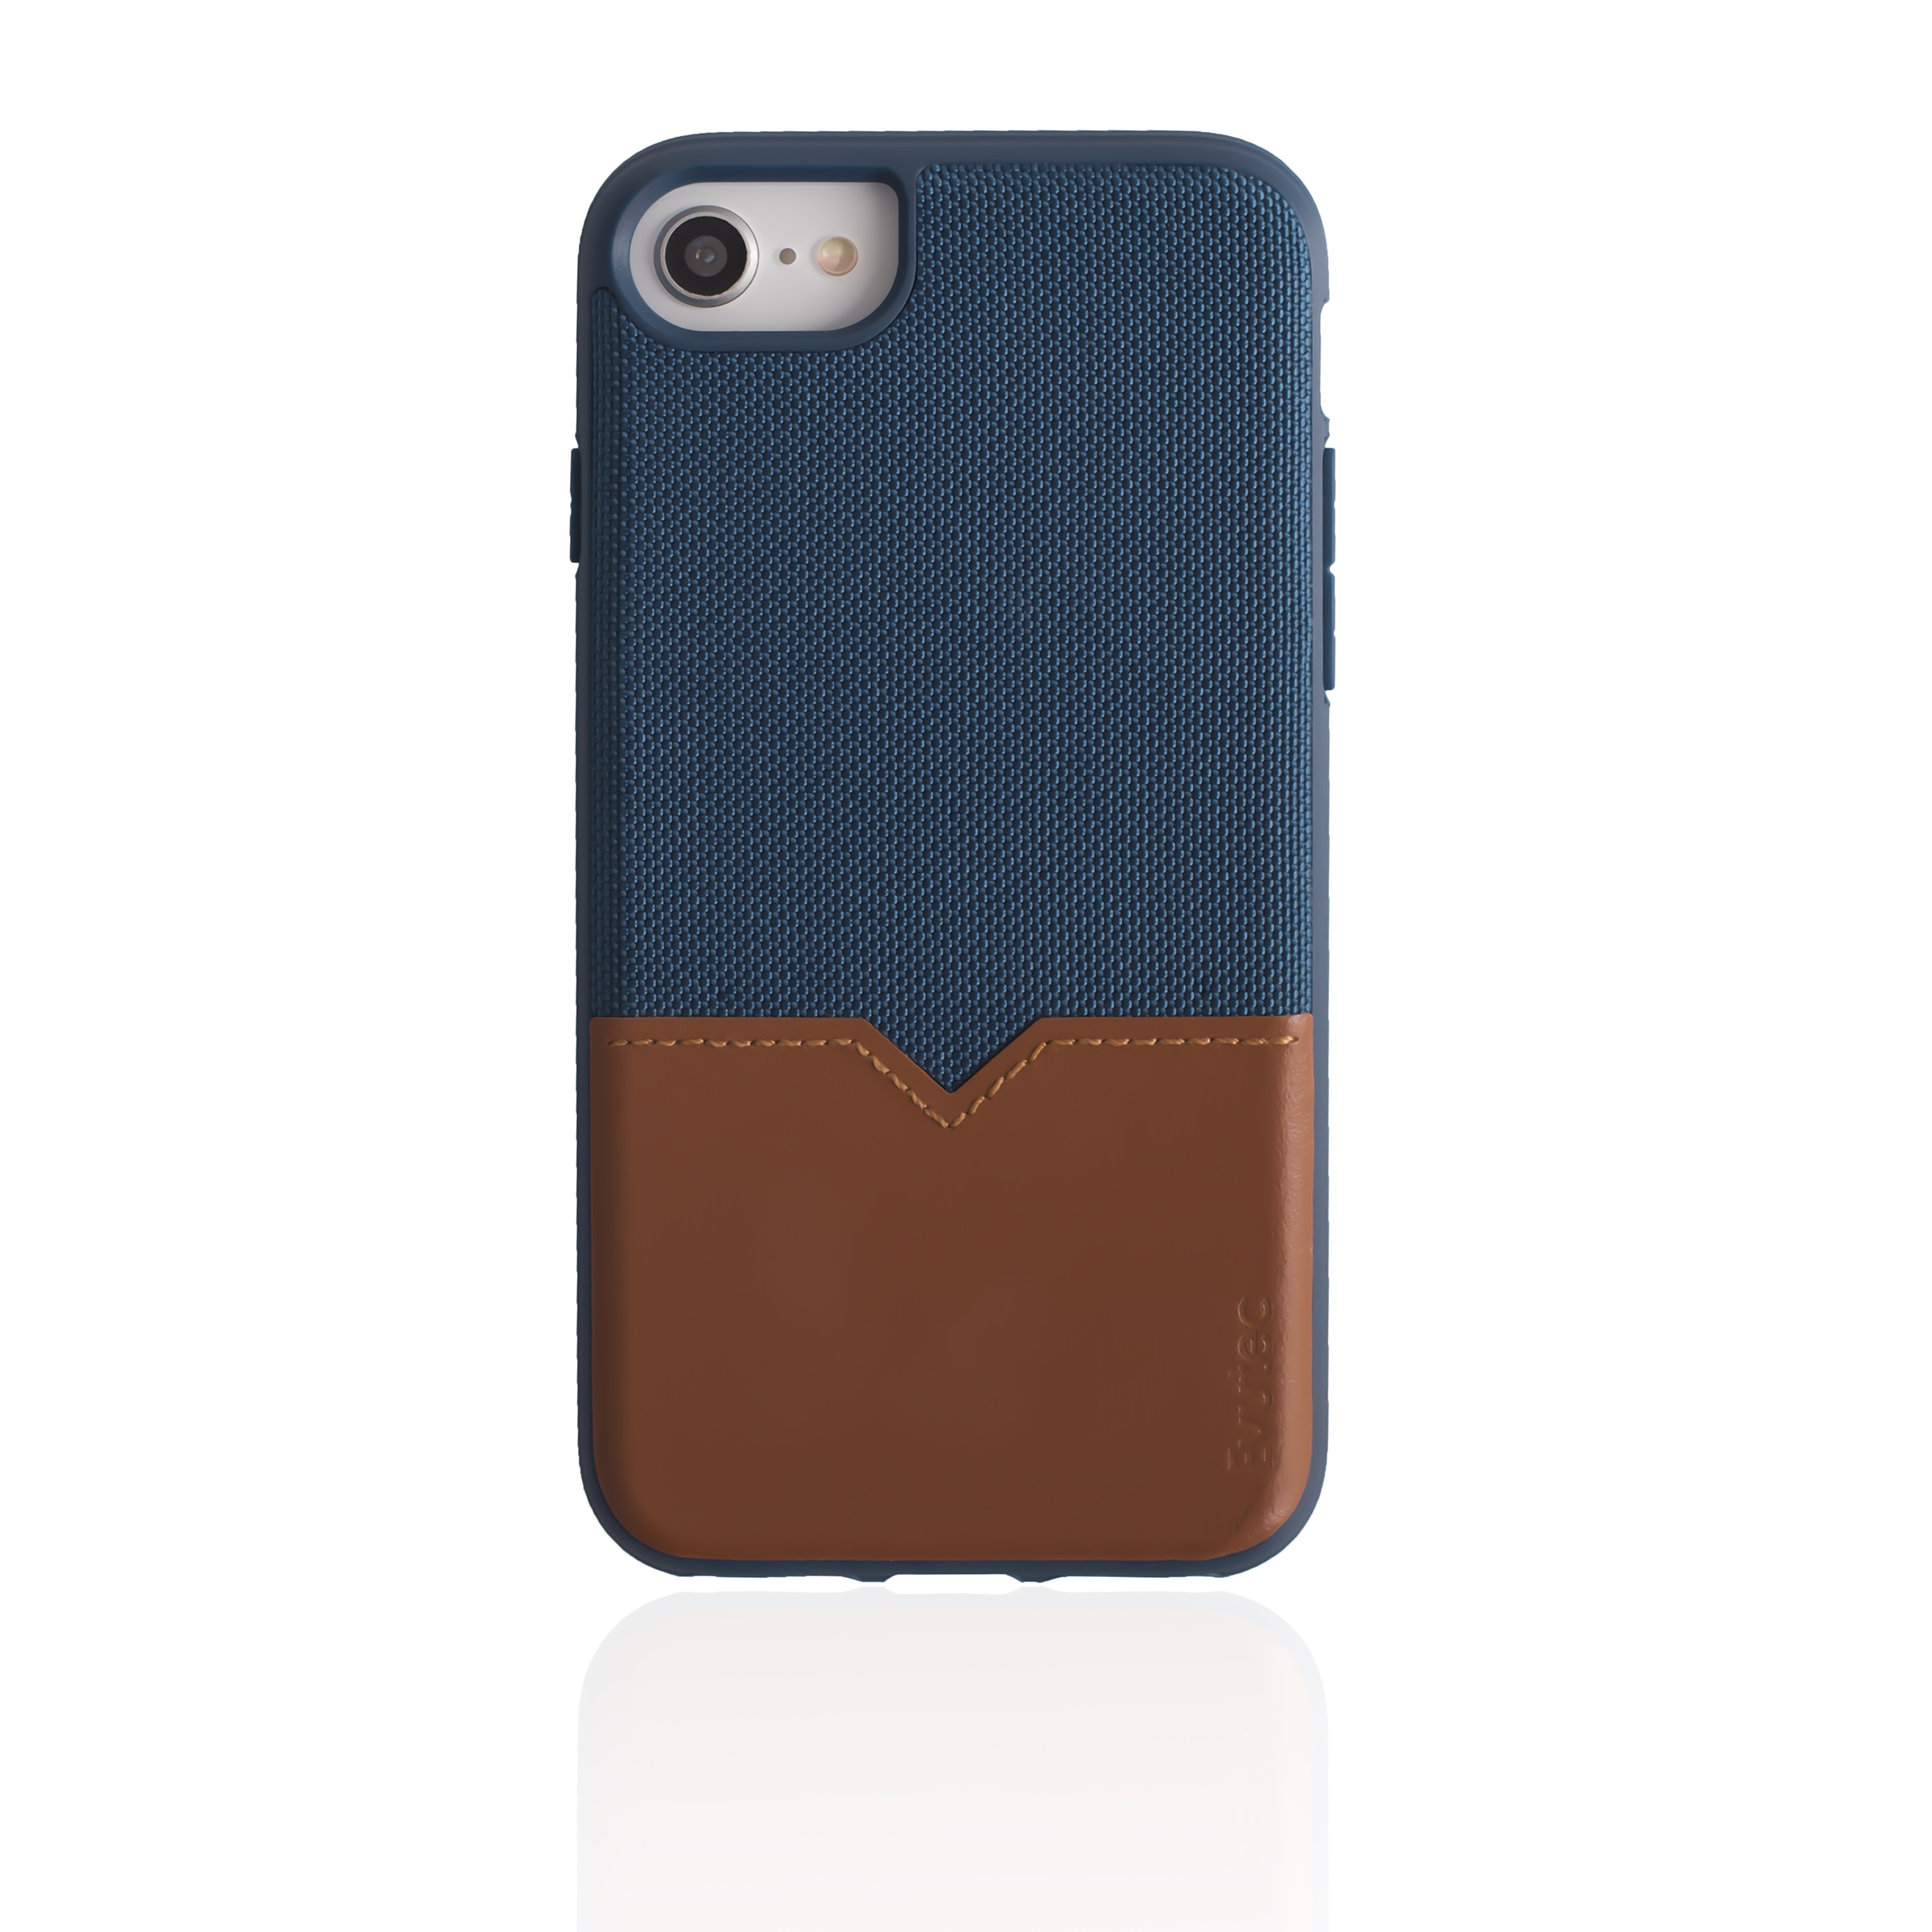 EVUTEC NHX00MTD03 BLUE IPHONE CASE FOR THE IPHONE X WITH